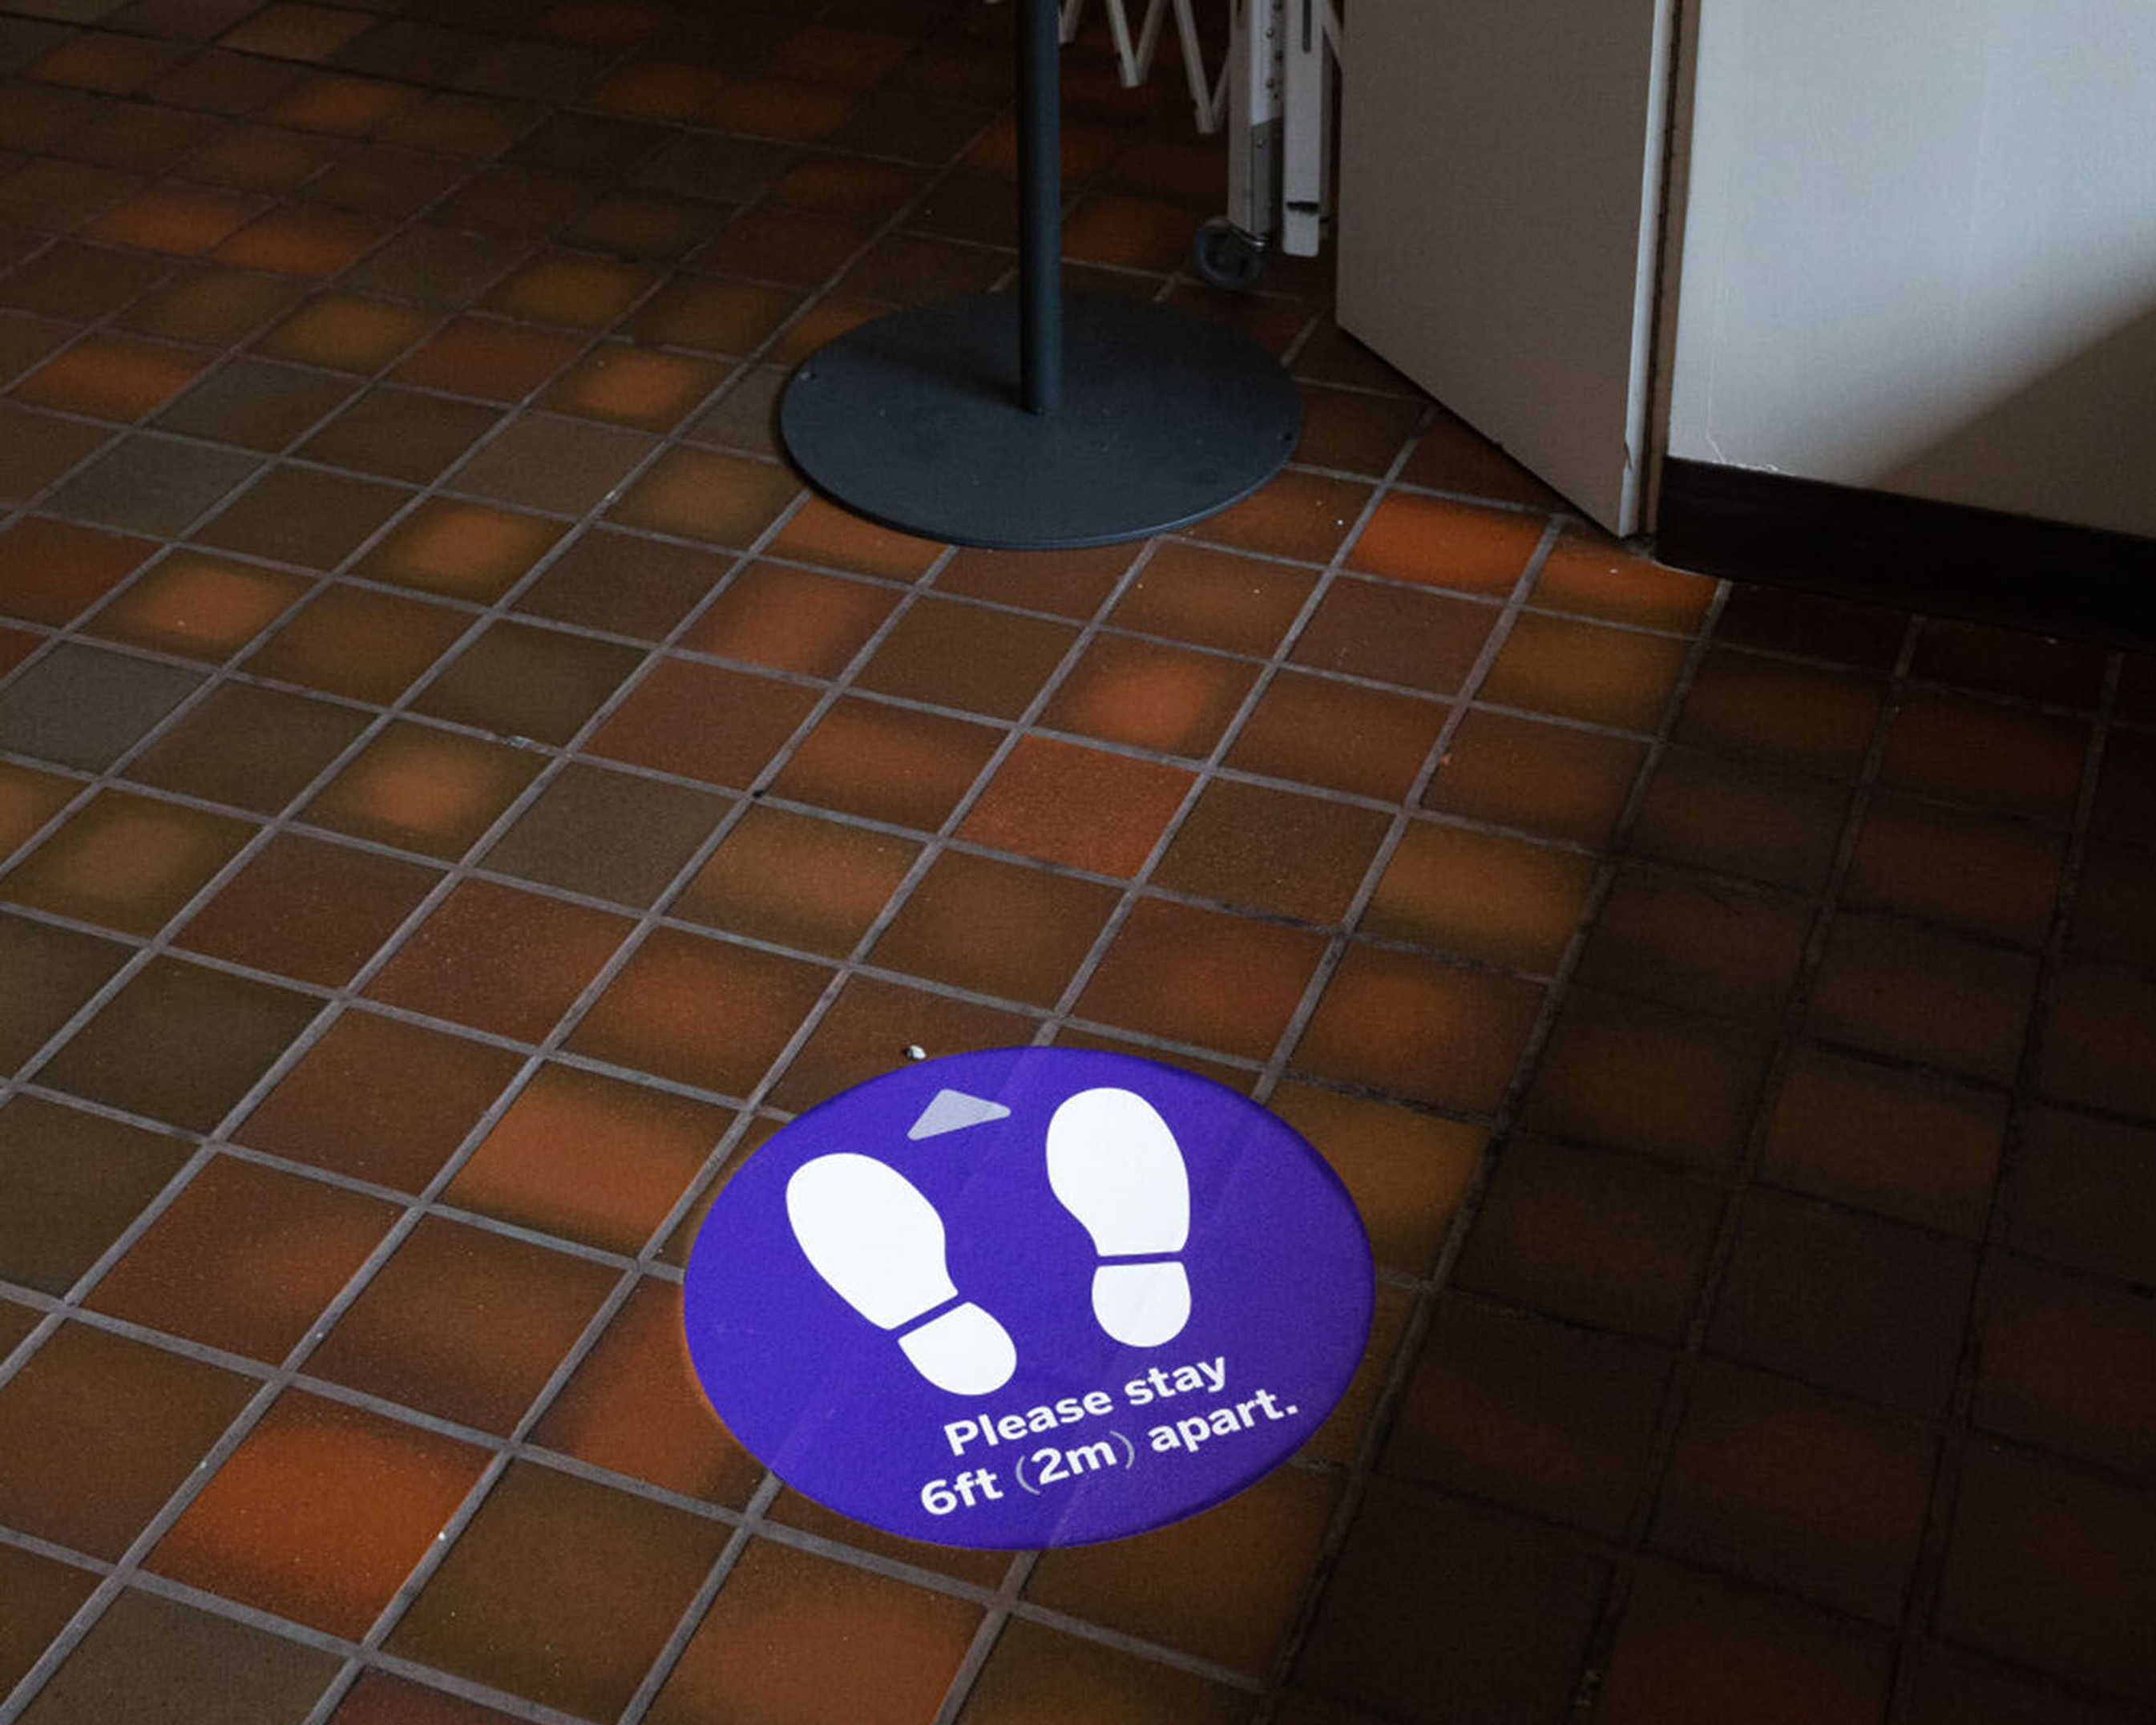 A social distancing sticker on the UCC floor.